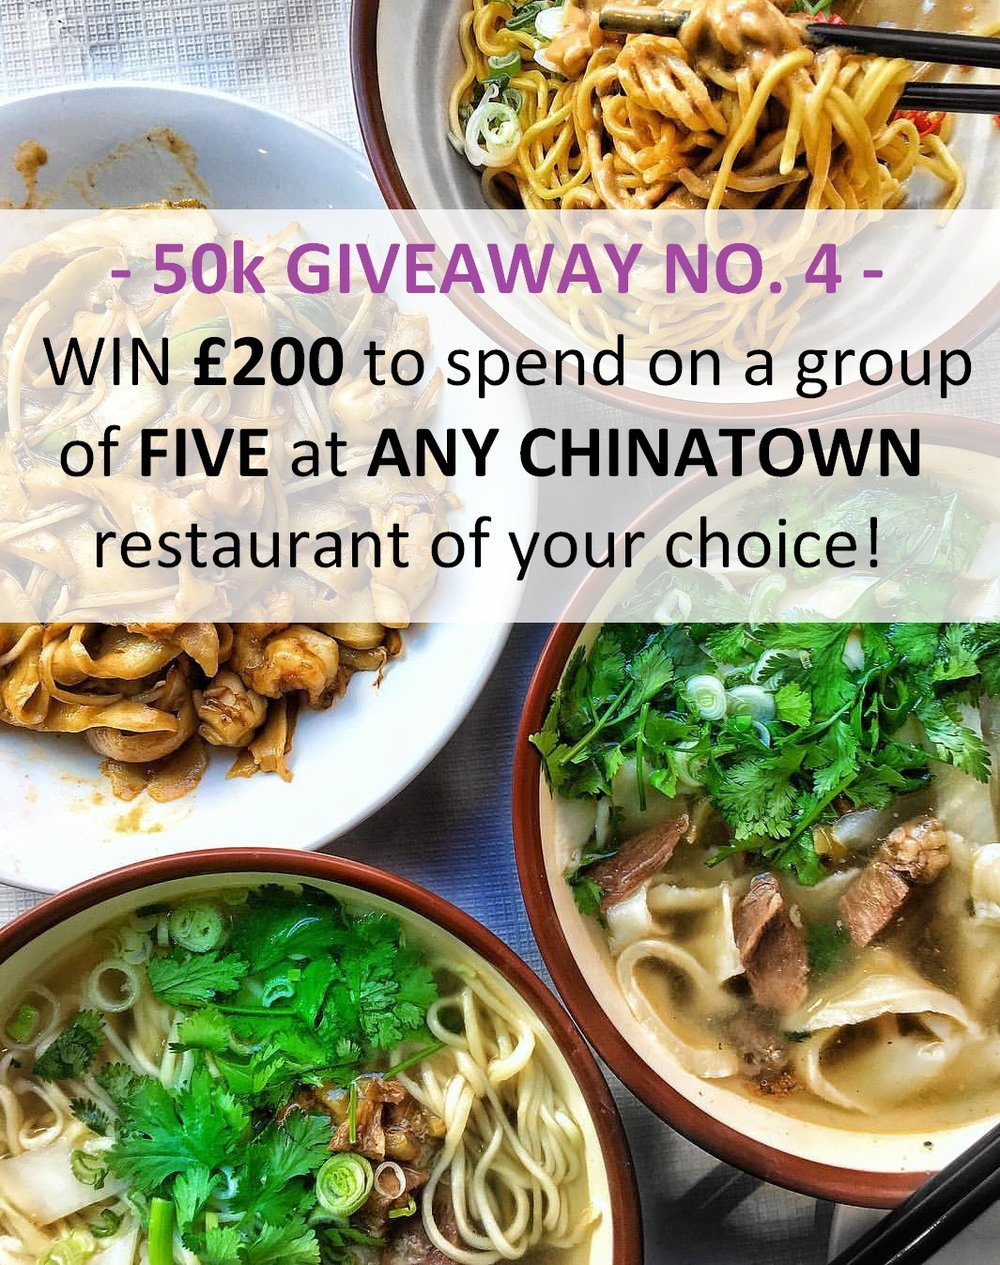 Giveaway 4 - Chinatown.jpg